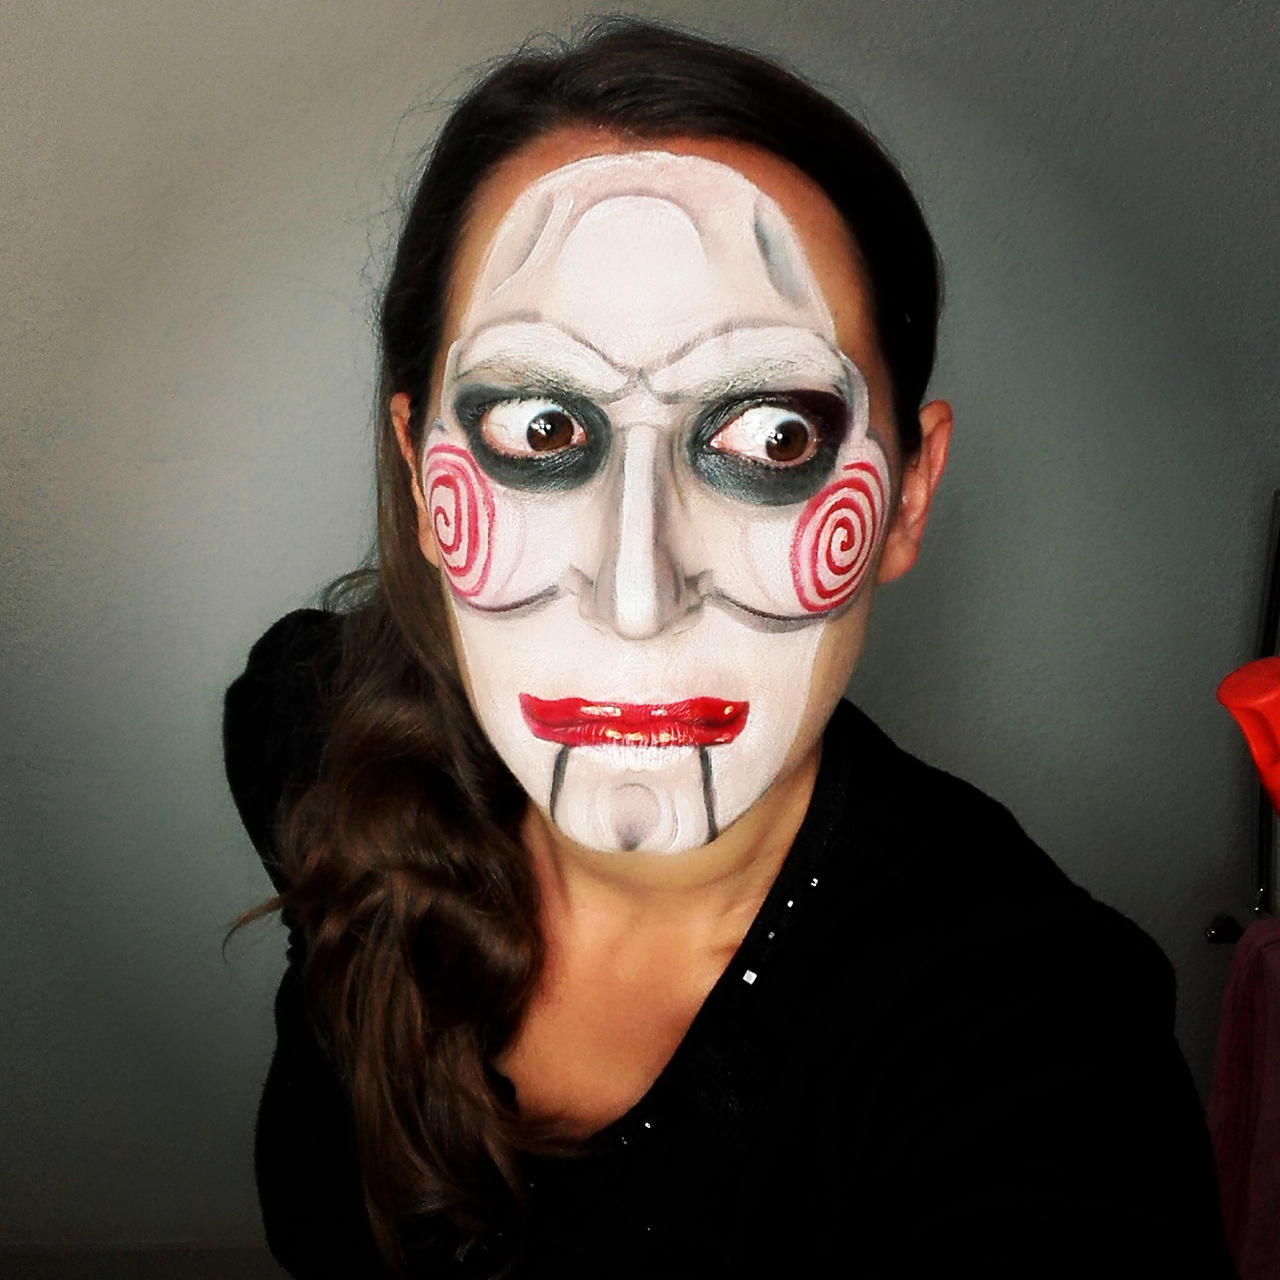 Billy The Puppet Makeup By